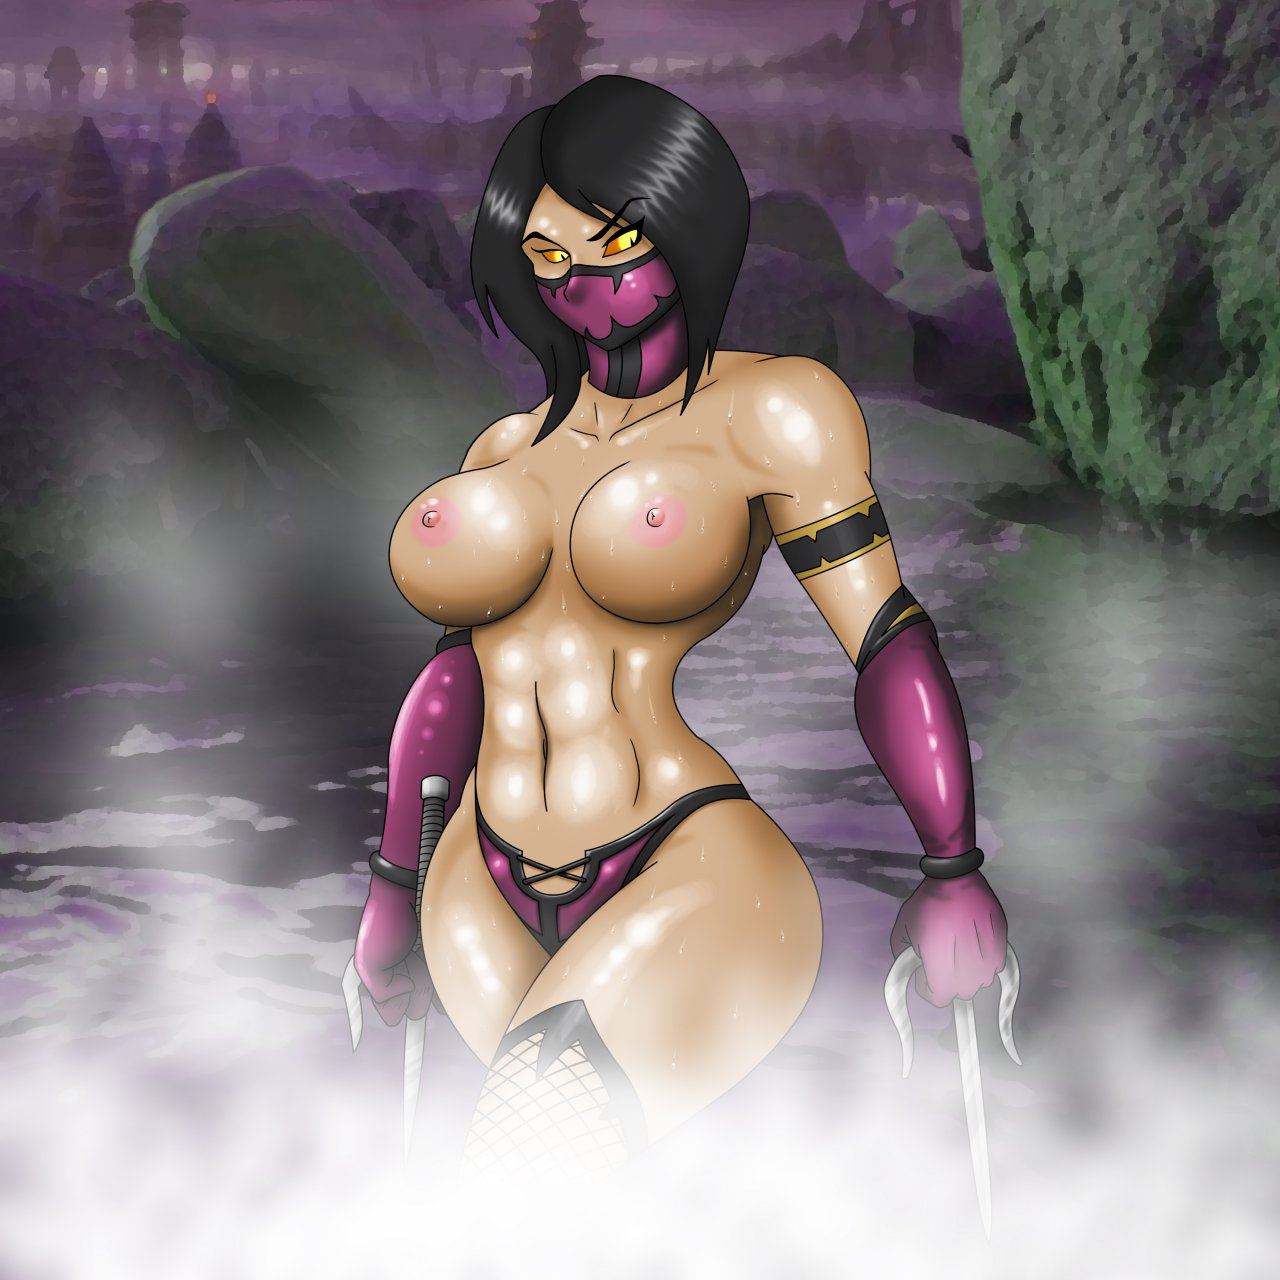 Mortal kombat mileena nude hentai photo